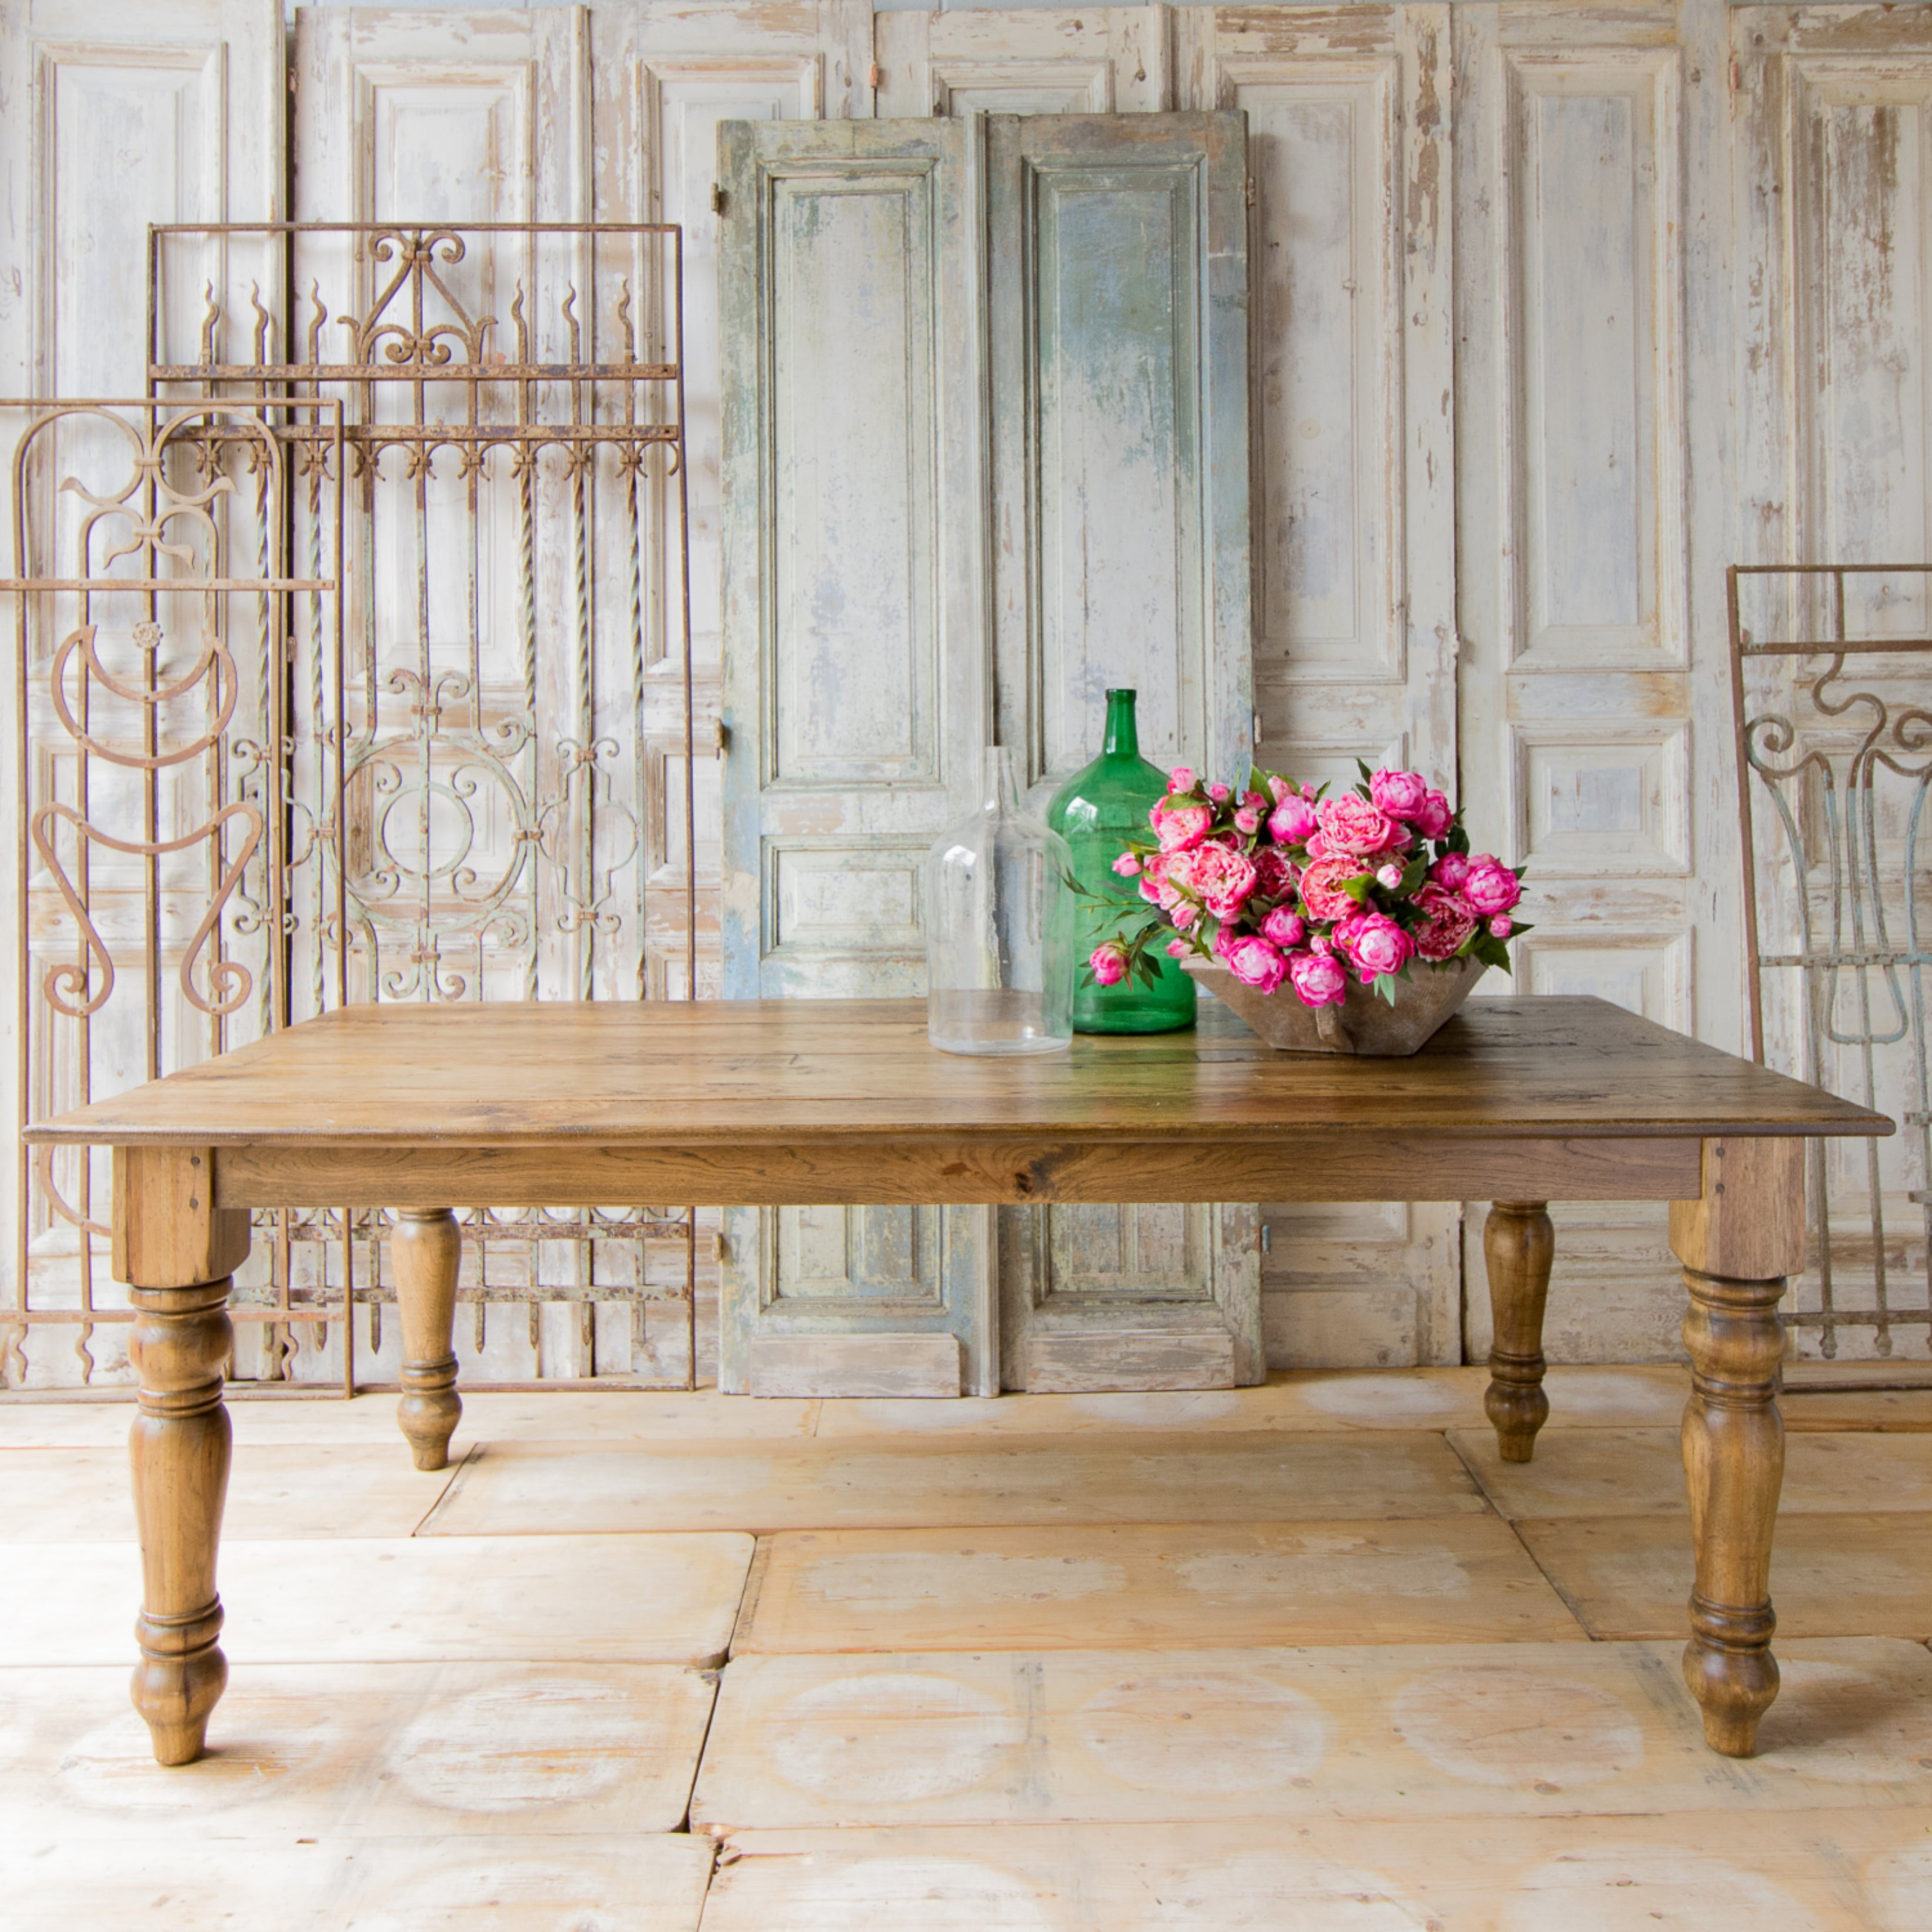 Incredible Handcrafted Harvest Dining Table Salvaged Pecan Interior Design Ideas Gentotryabchikinfo